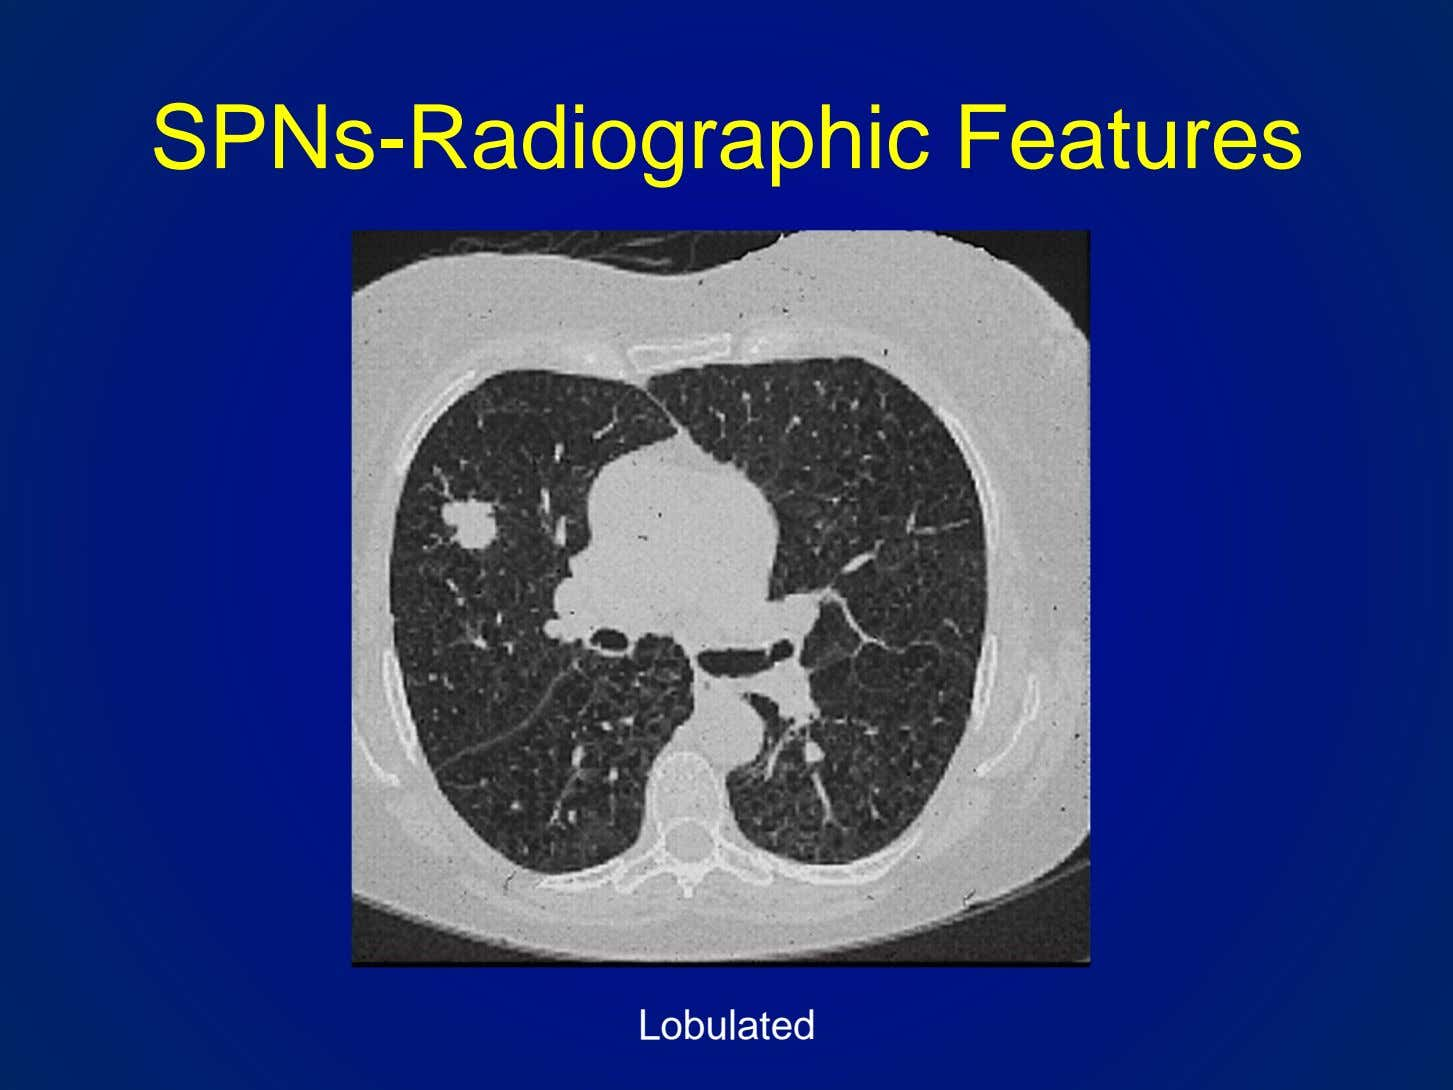 SPNs-Radiographic Features Lobulated